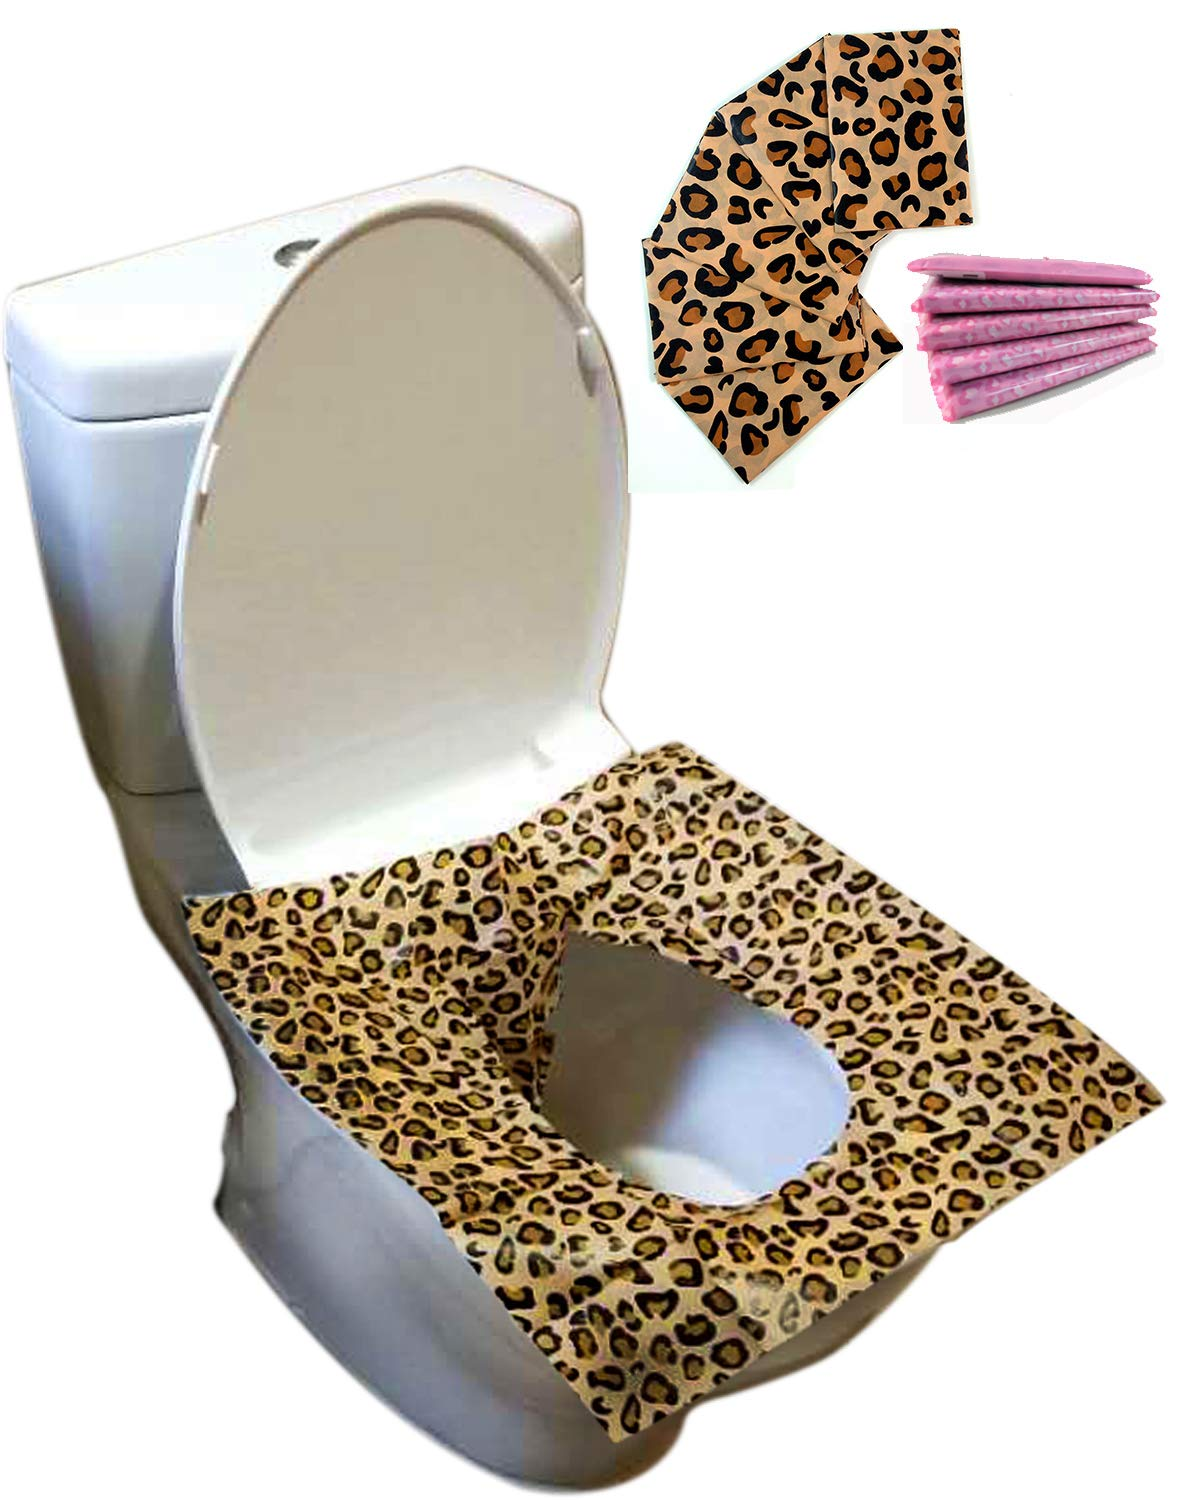 Disposable Toilet Seat Covers 25 Sheets(5 Bags) - Perfect Travel Pack Both for Kids and Adults HFHM